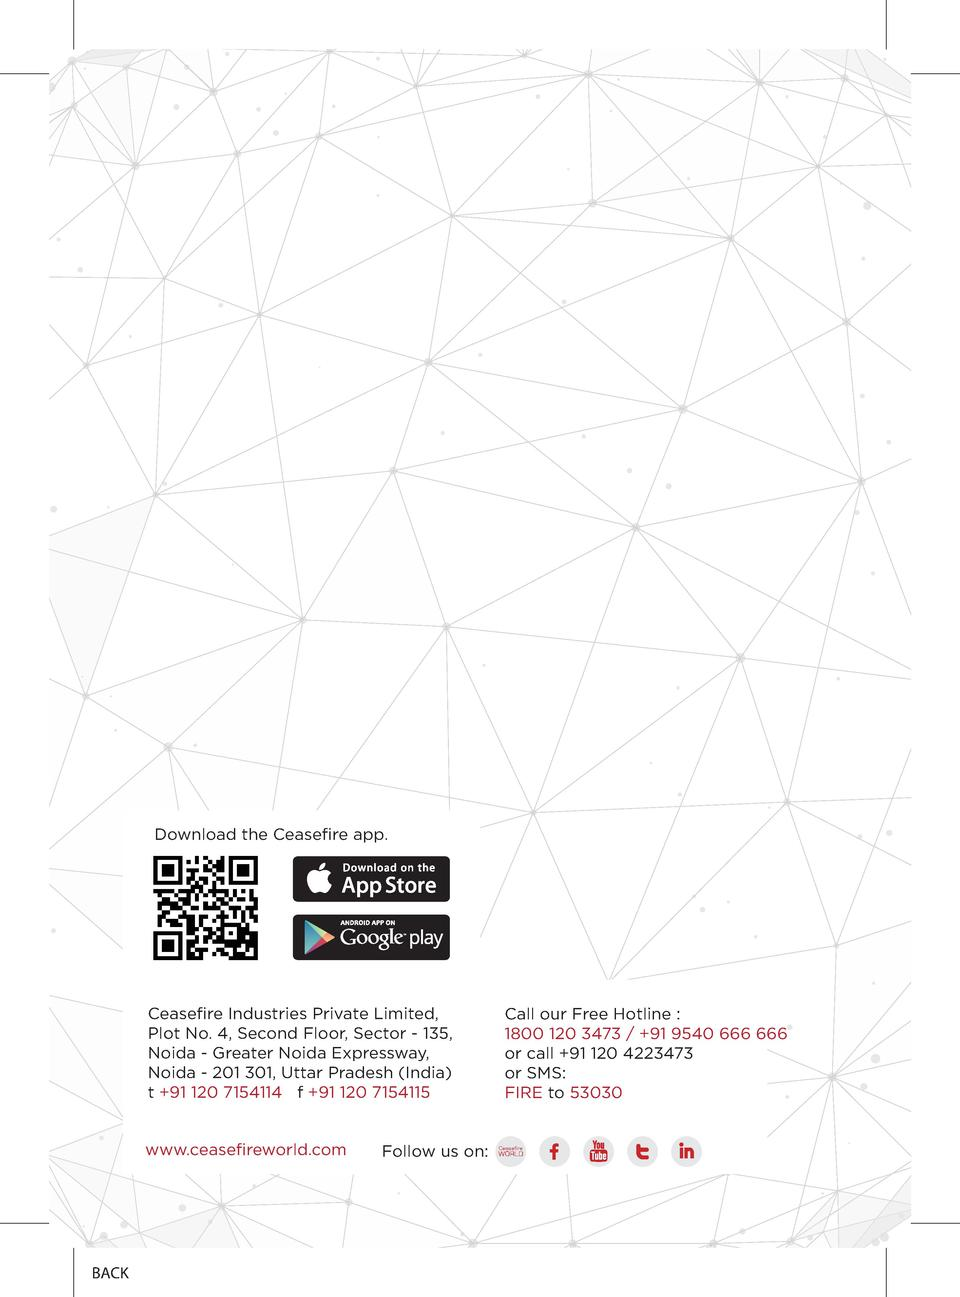 Download the Ceasefire app.  Ceasefire Industries Private Limited, Plot No. 4, Second Floor, Sector - 135, Noida - Greater...